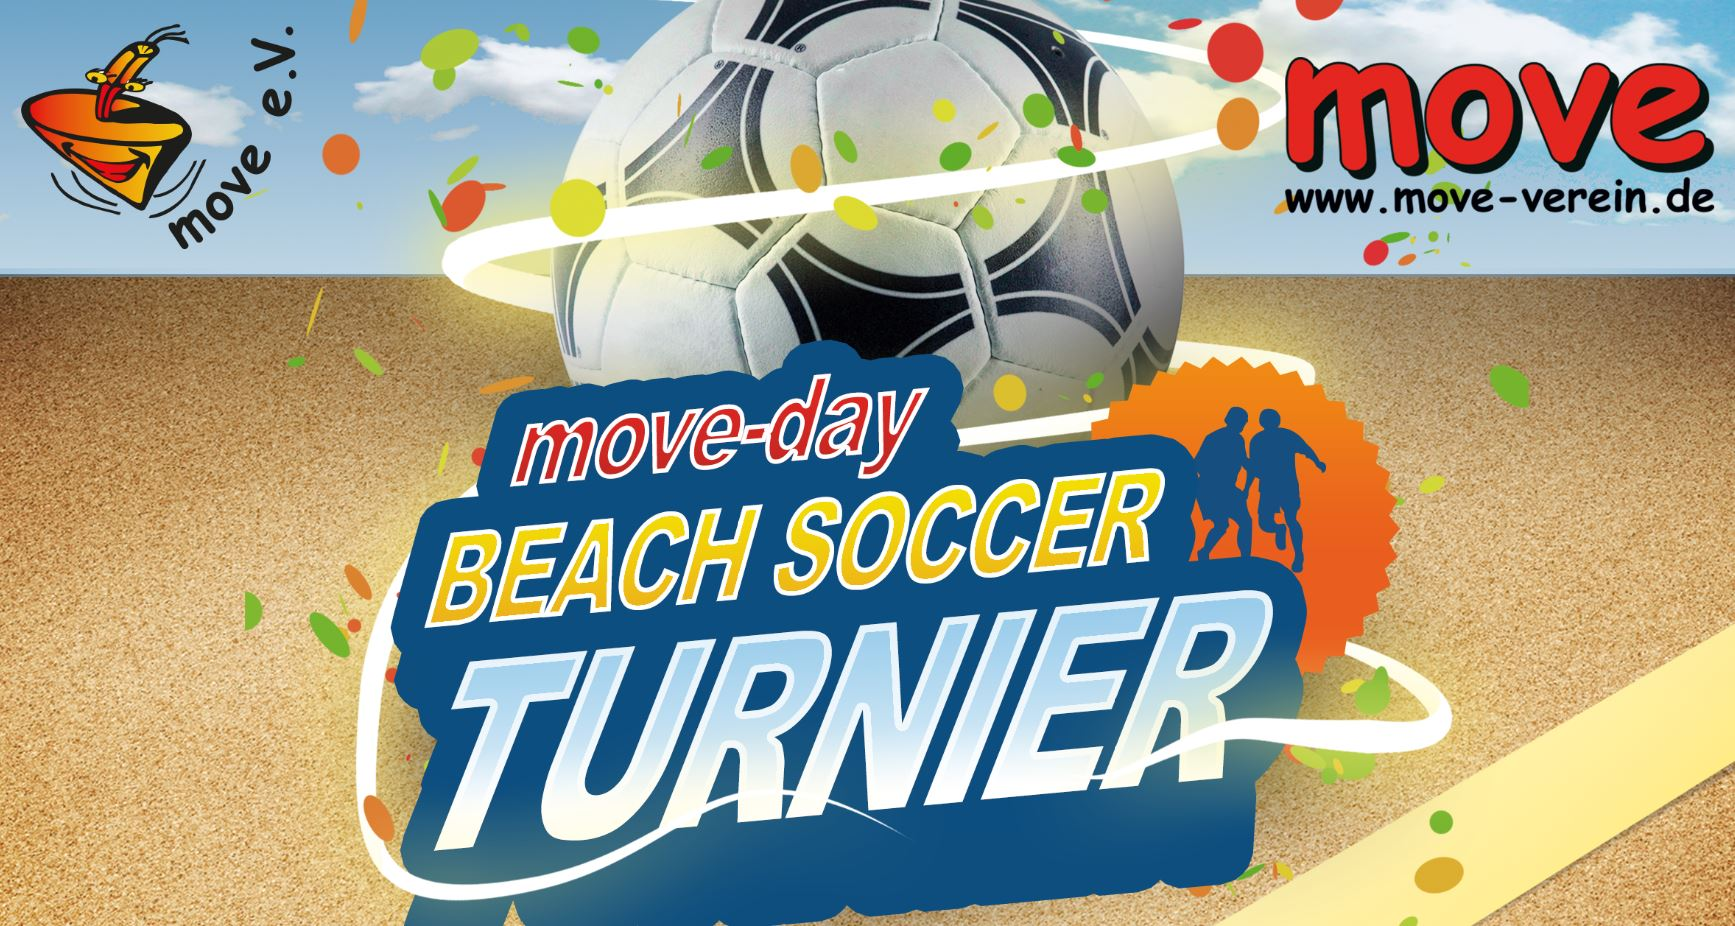 Beachsoccer-Turnier moveday